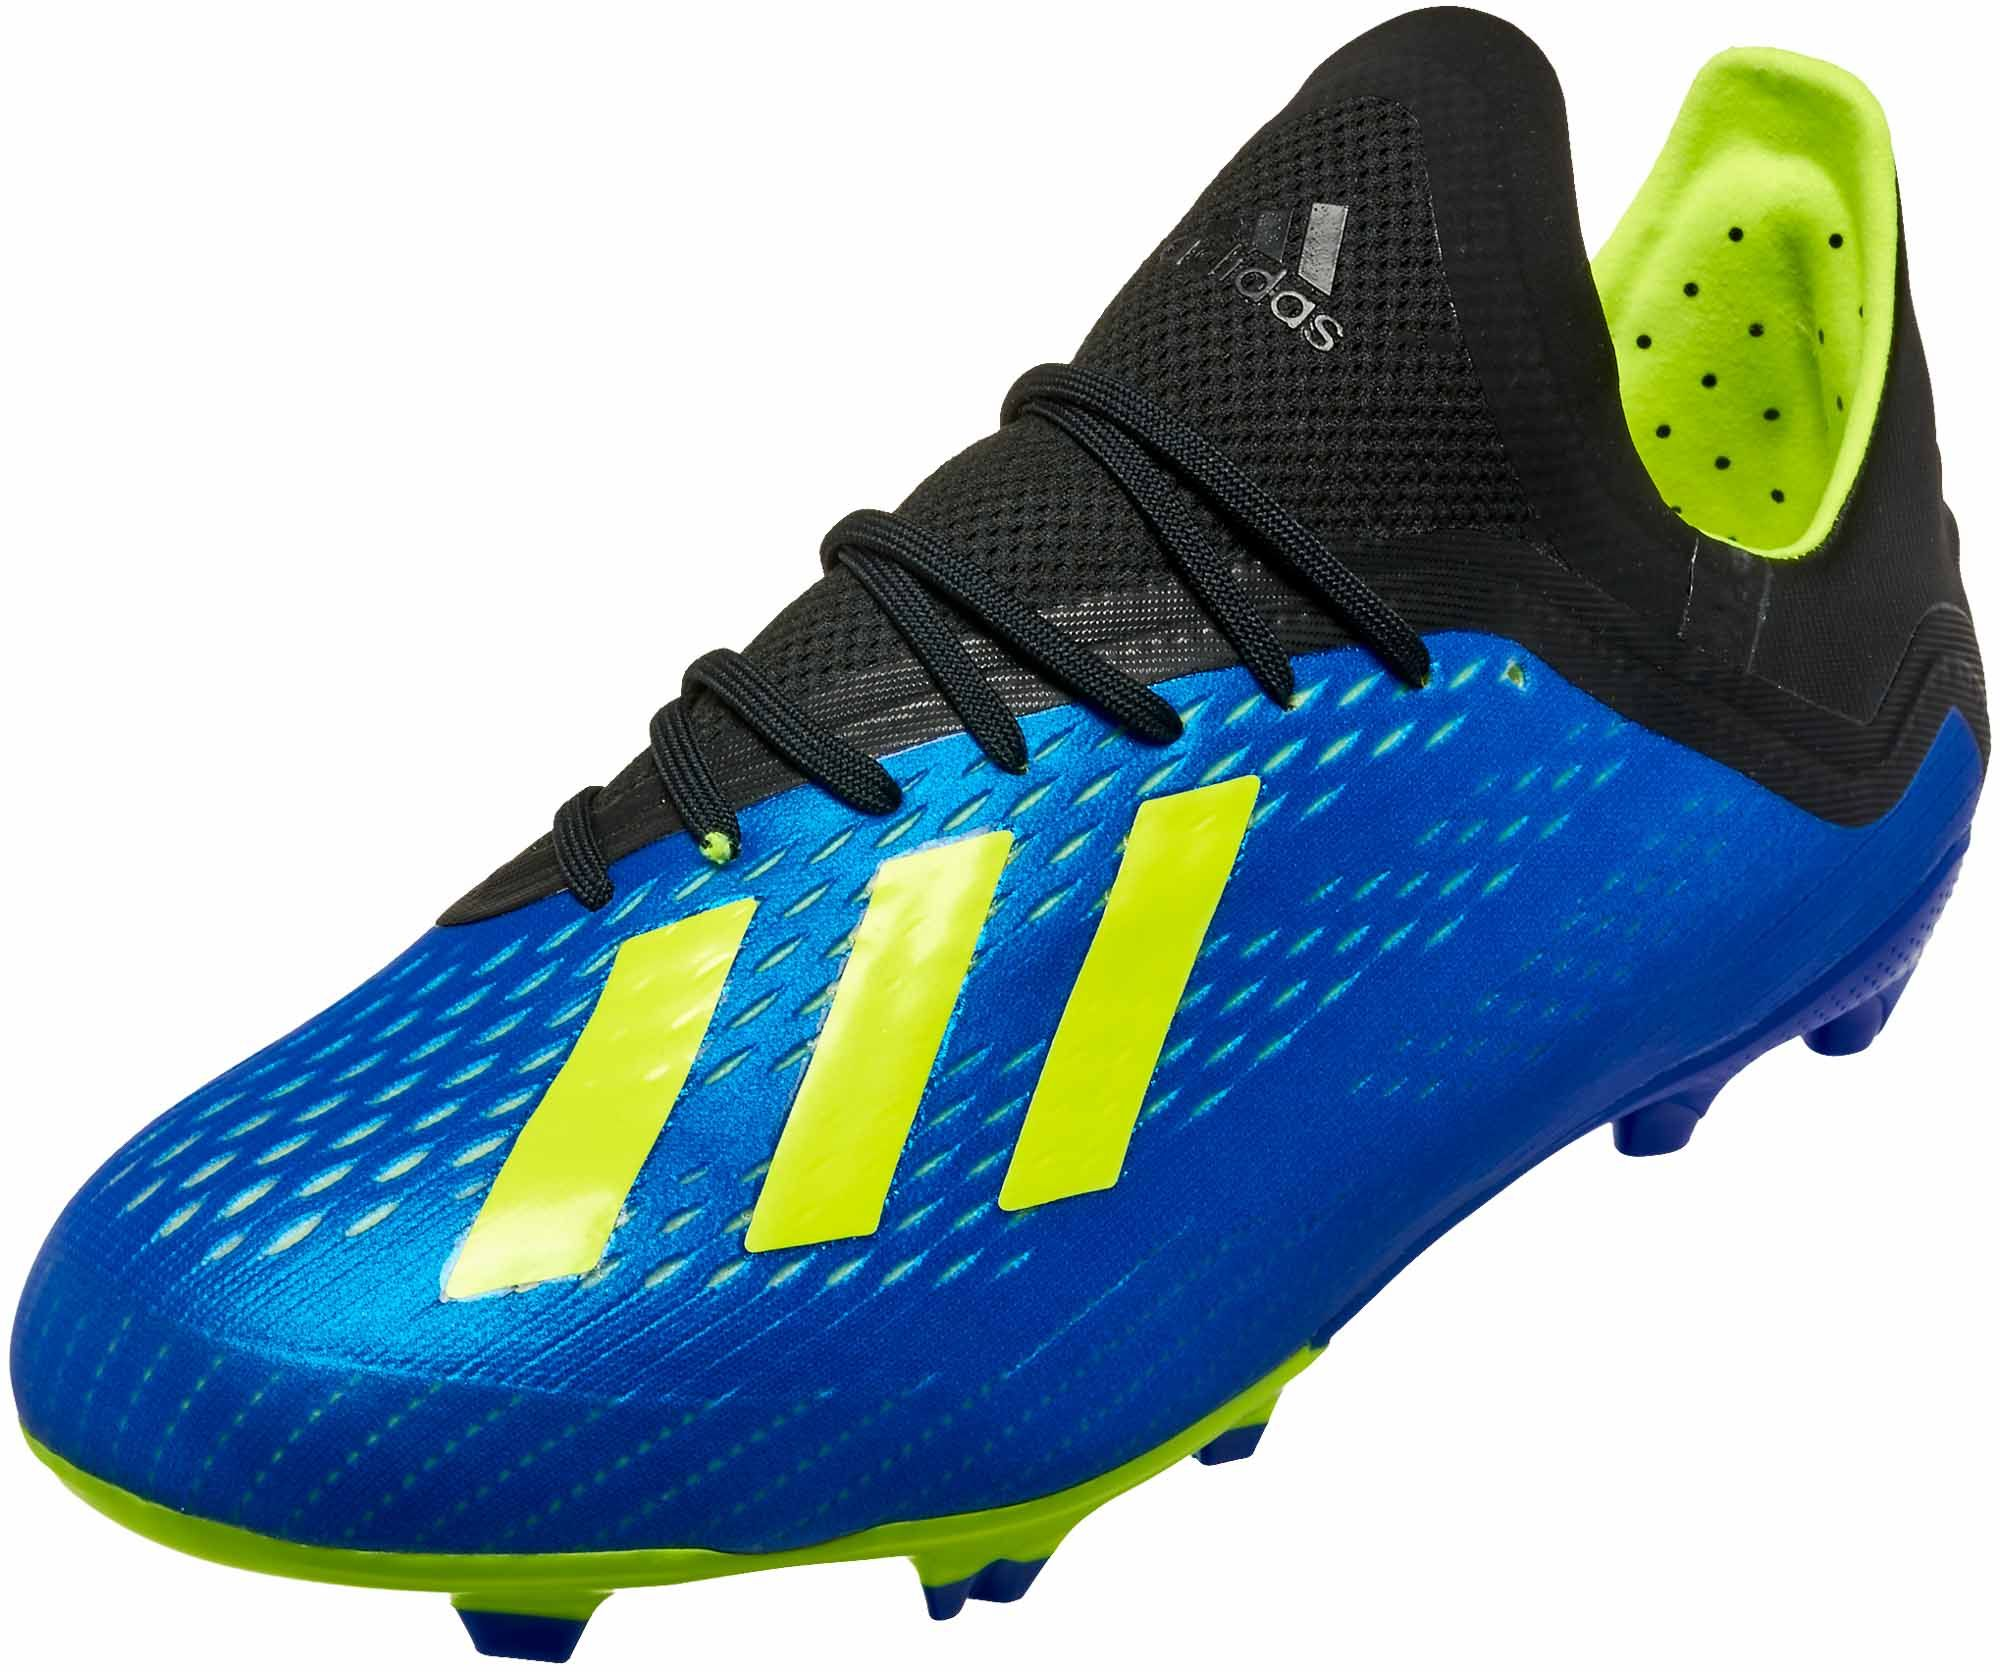 reputable site ef355 56db6 Youth adidas X18.1. At SoccerPro.